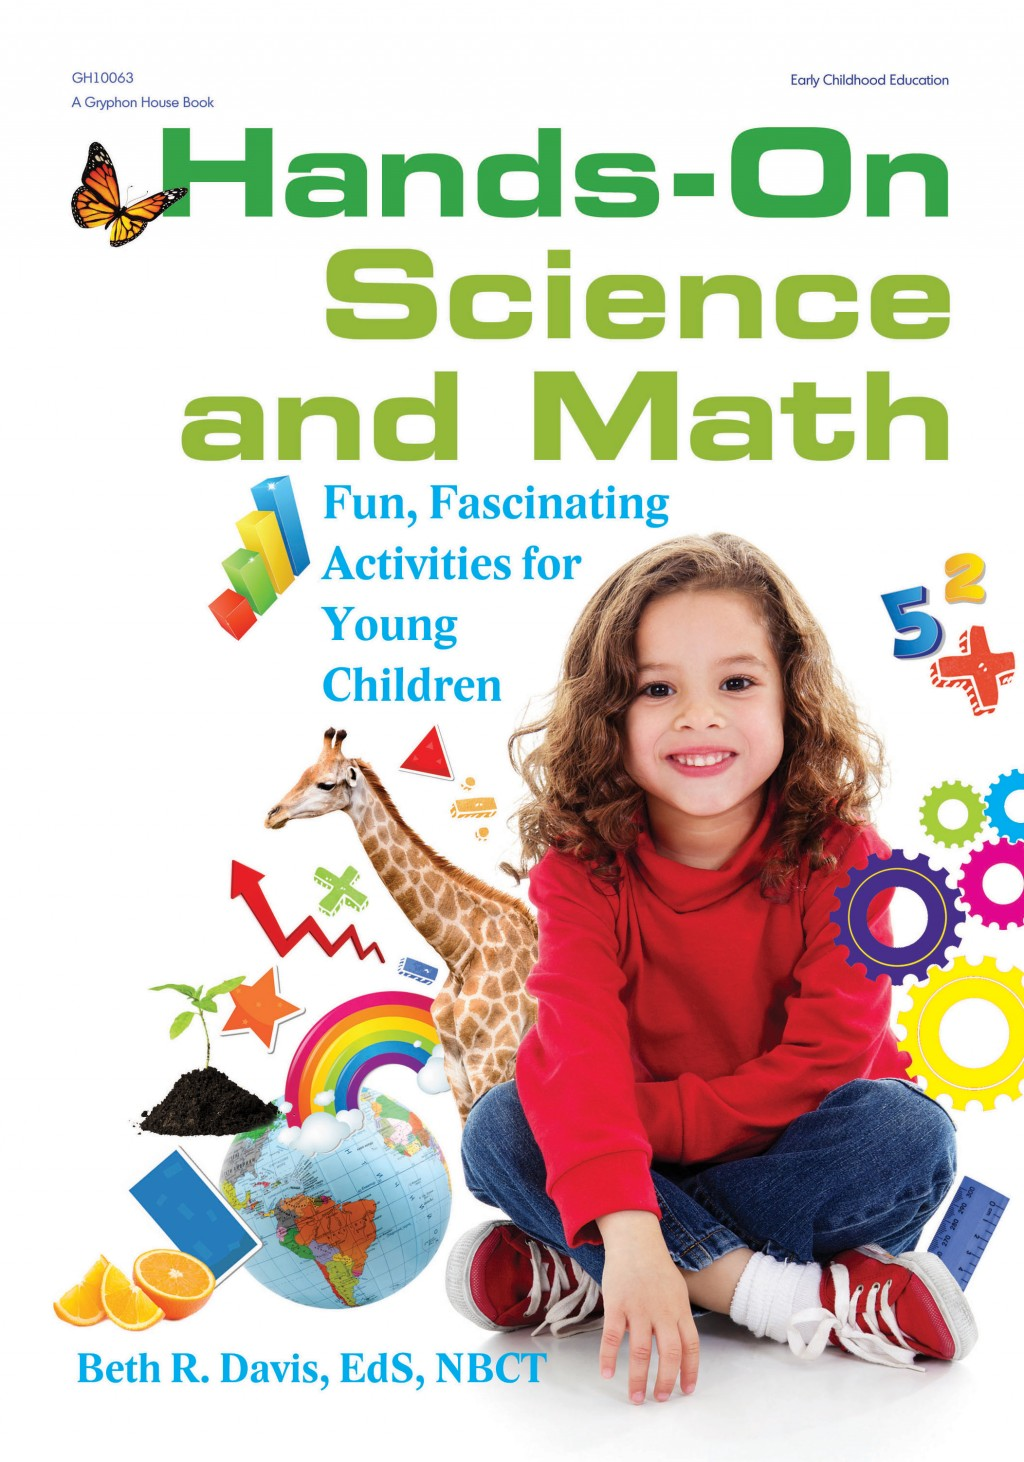 Hands-On Science and Math | Gryphon House